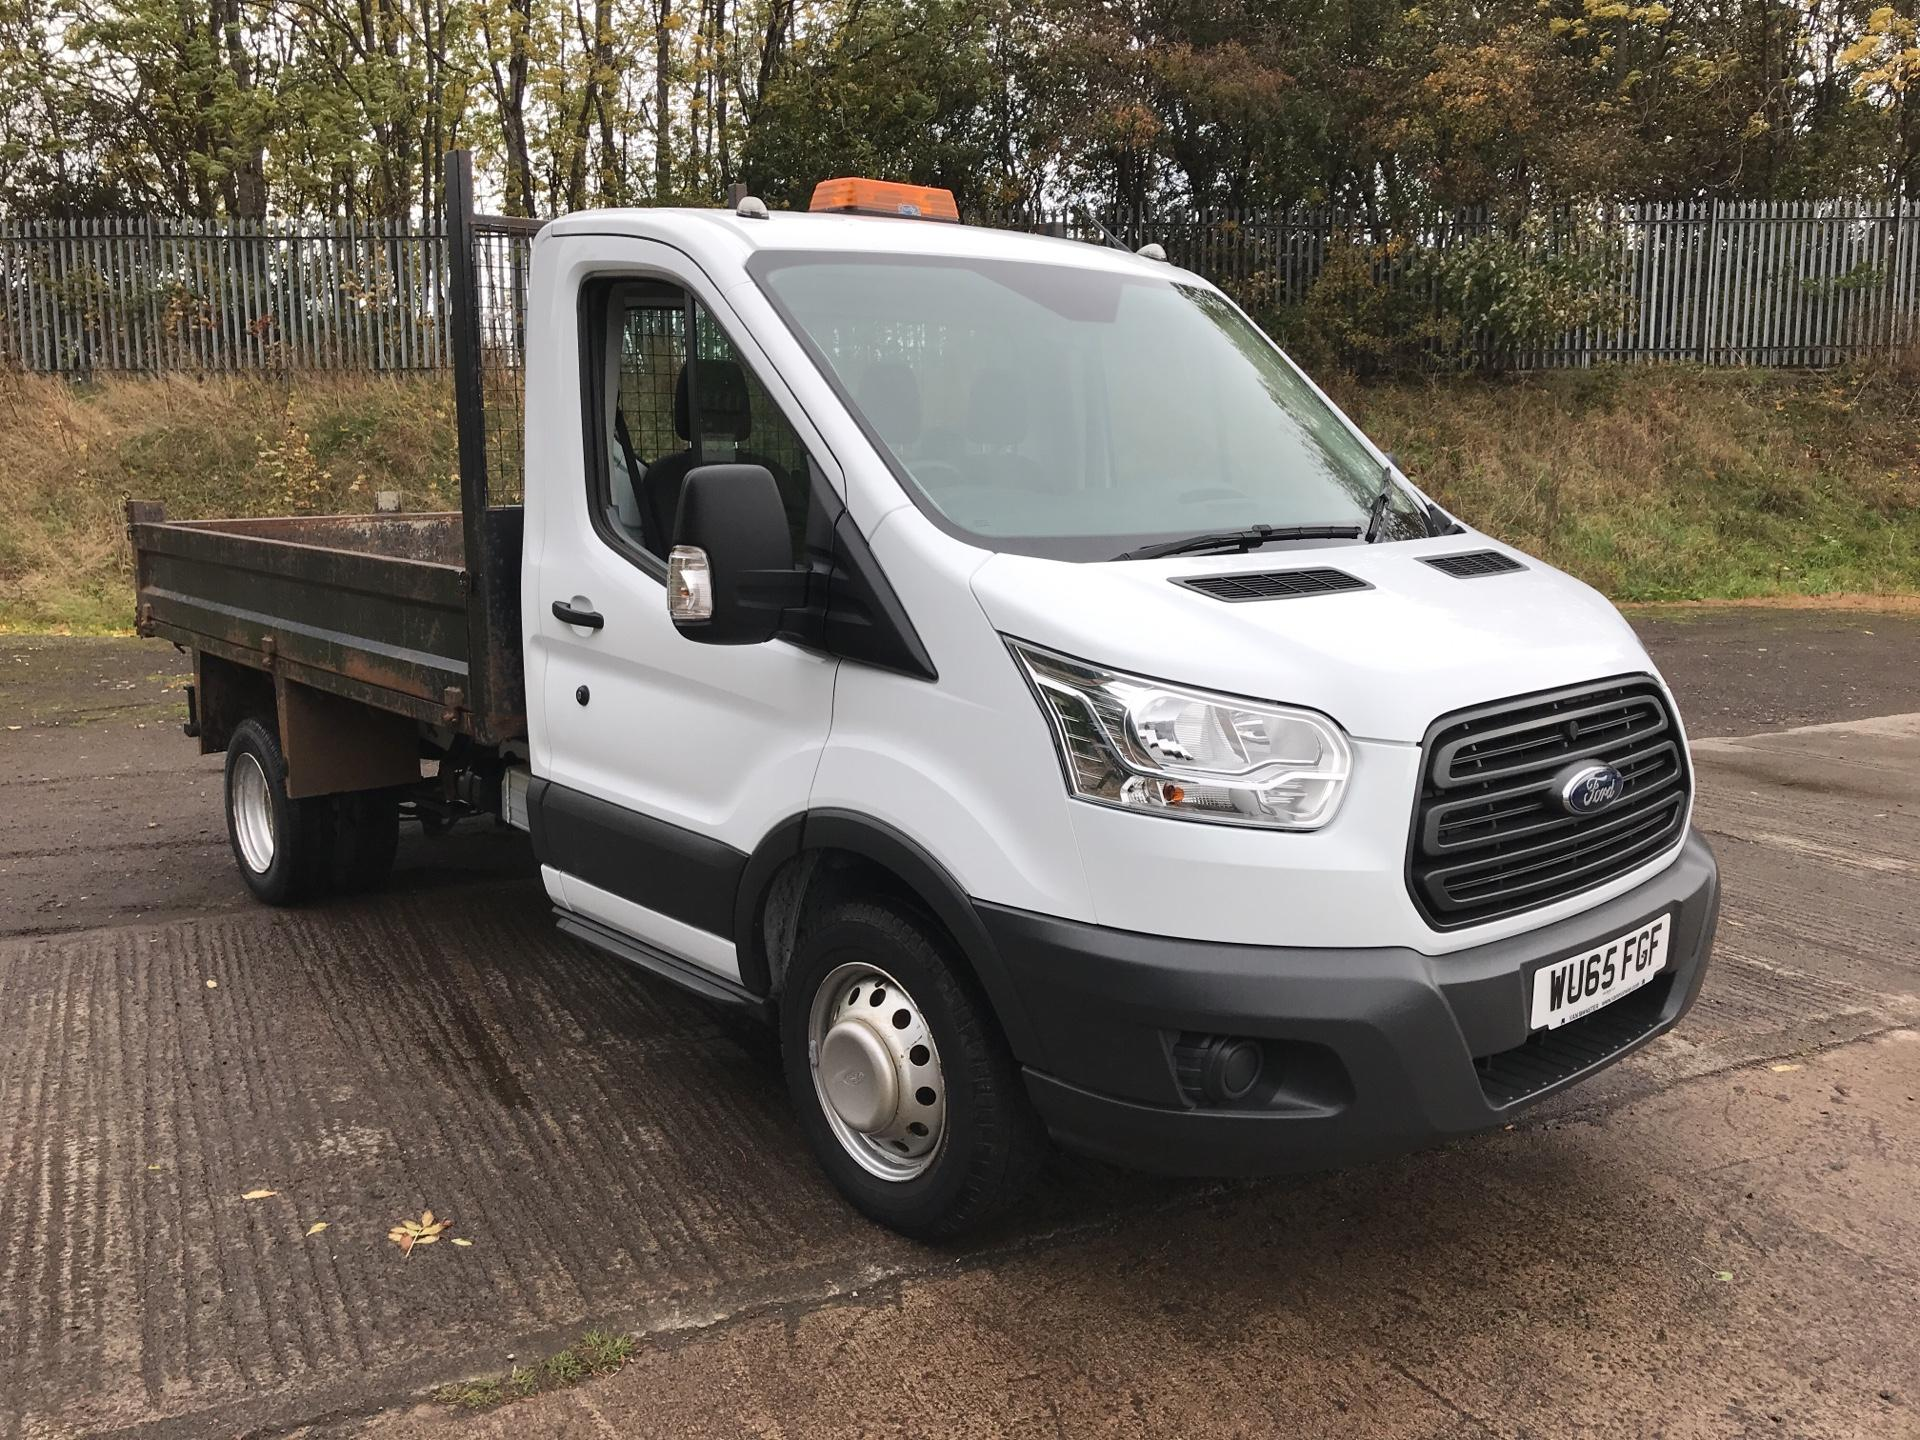 2015 Ford Transit 350 L2 SINGLE CAB TIPPER 125PS EURO 5 (VALUE RANGE VEHICLE - CONDITION REFLECTED IN PRICE) (WU65FGF)